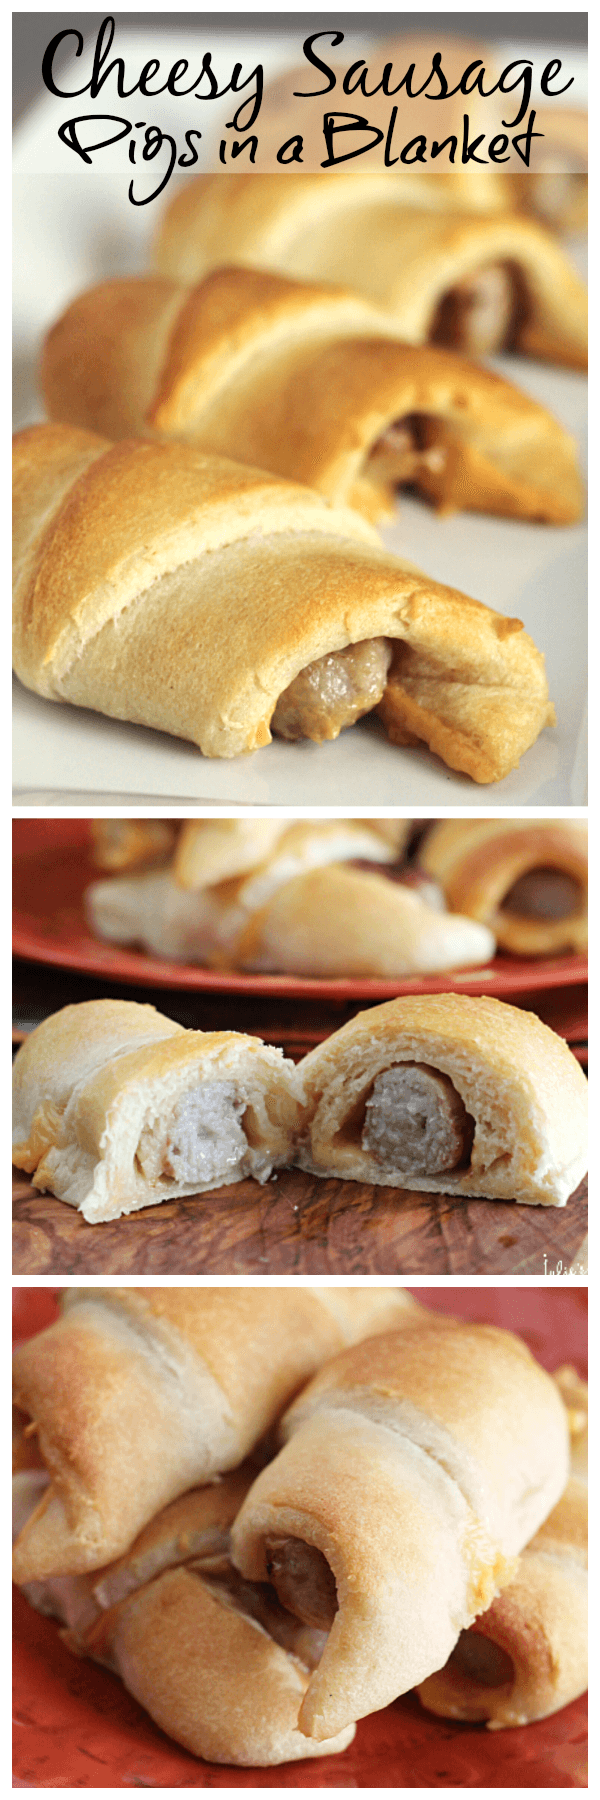 Cheesy Sausage Pigs in a Blanket ~ Flaky Crescent Rolls Stuffed with Sausage and Cheese! Quick, Easy and Perfect for Breakfast!